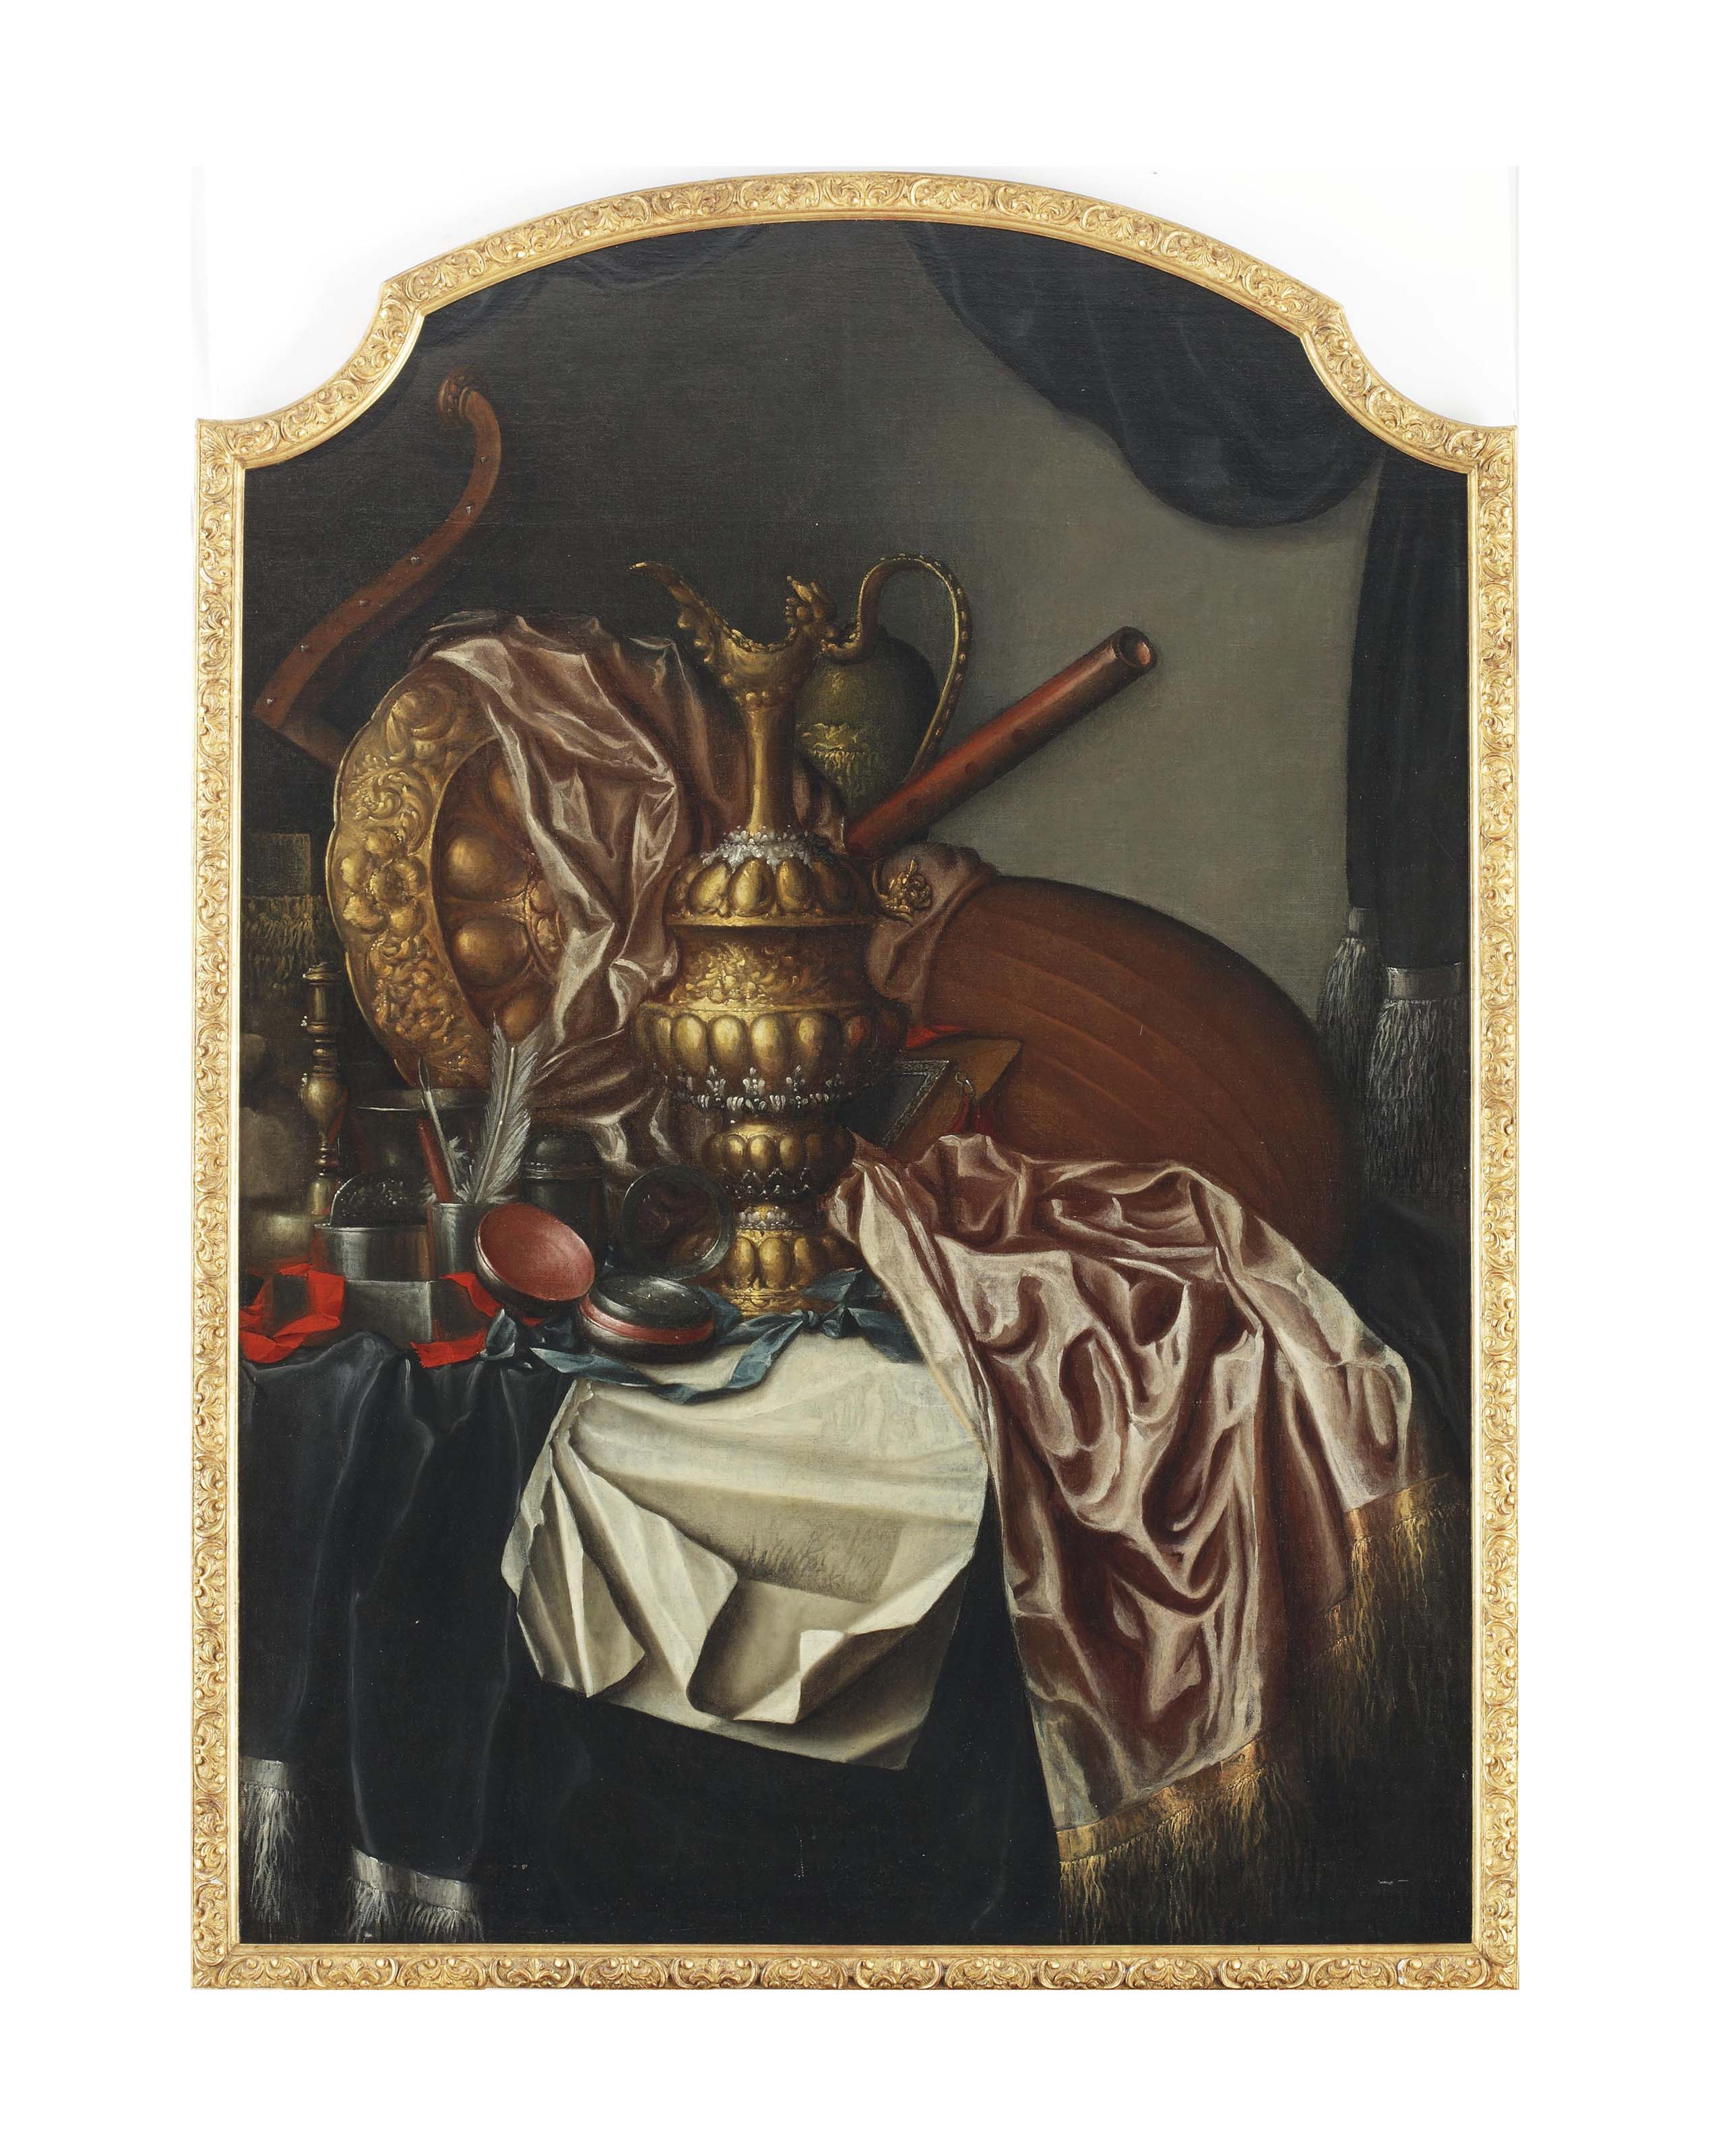 A brass urn, a brass shield, musical instruments, a quill, a compass, a red and a green ribbon, a manuscript and other objects, all on a draped table